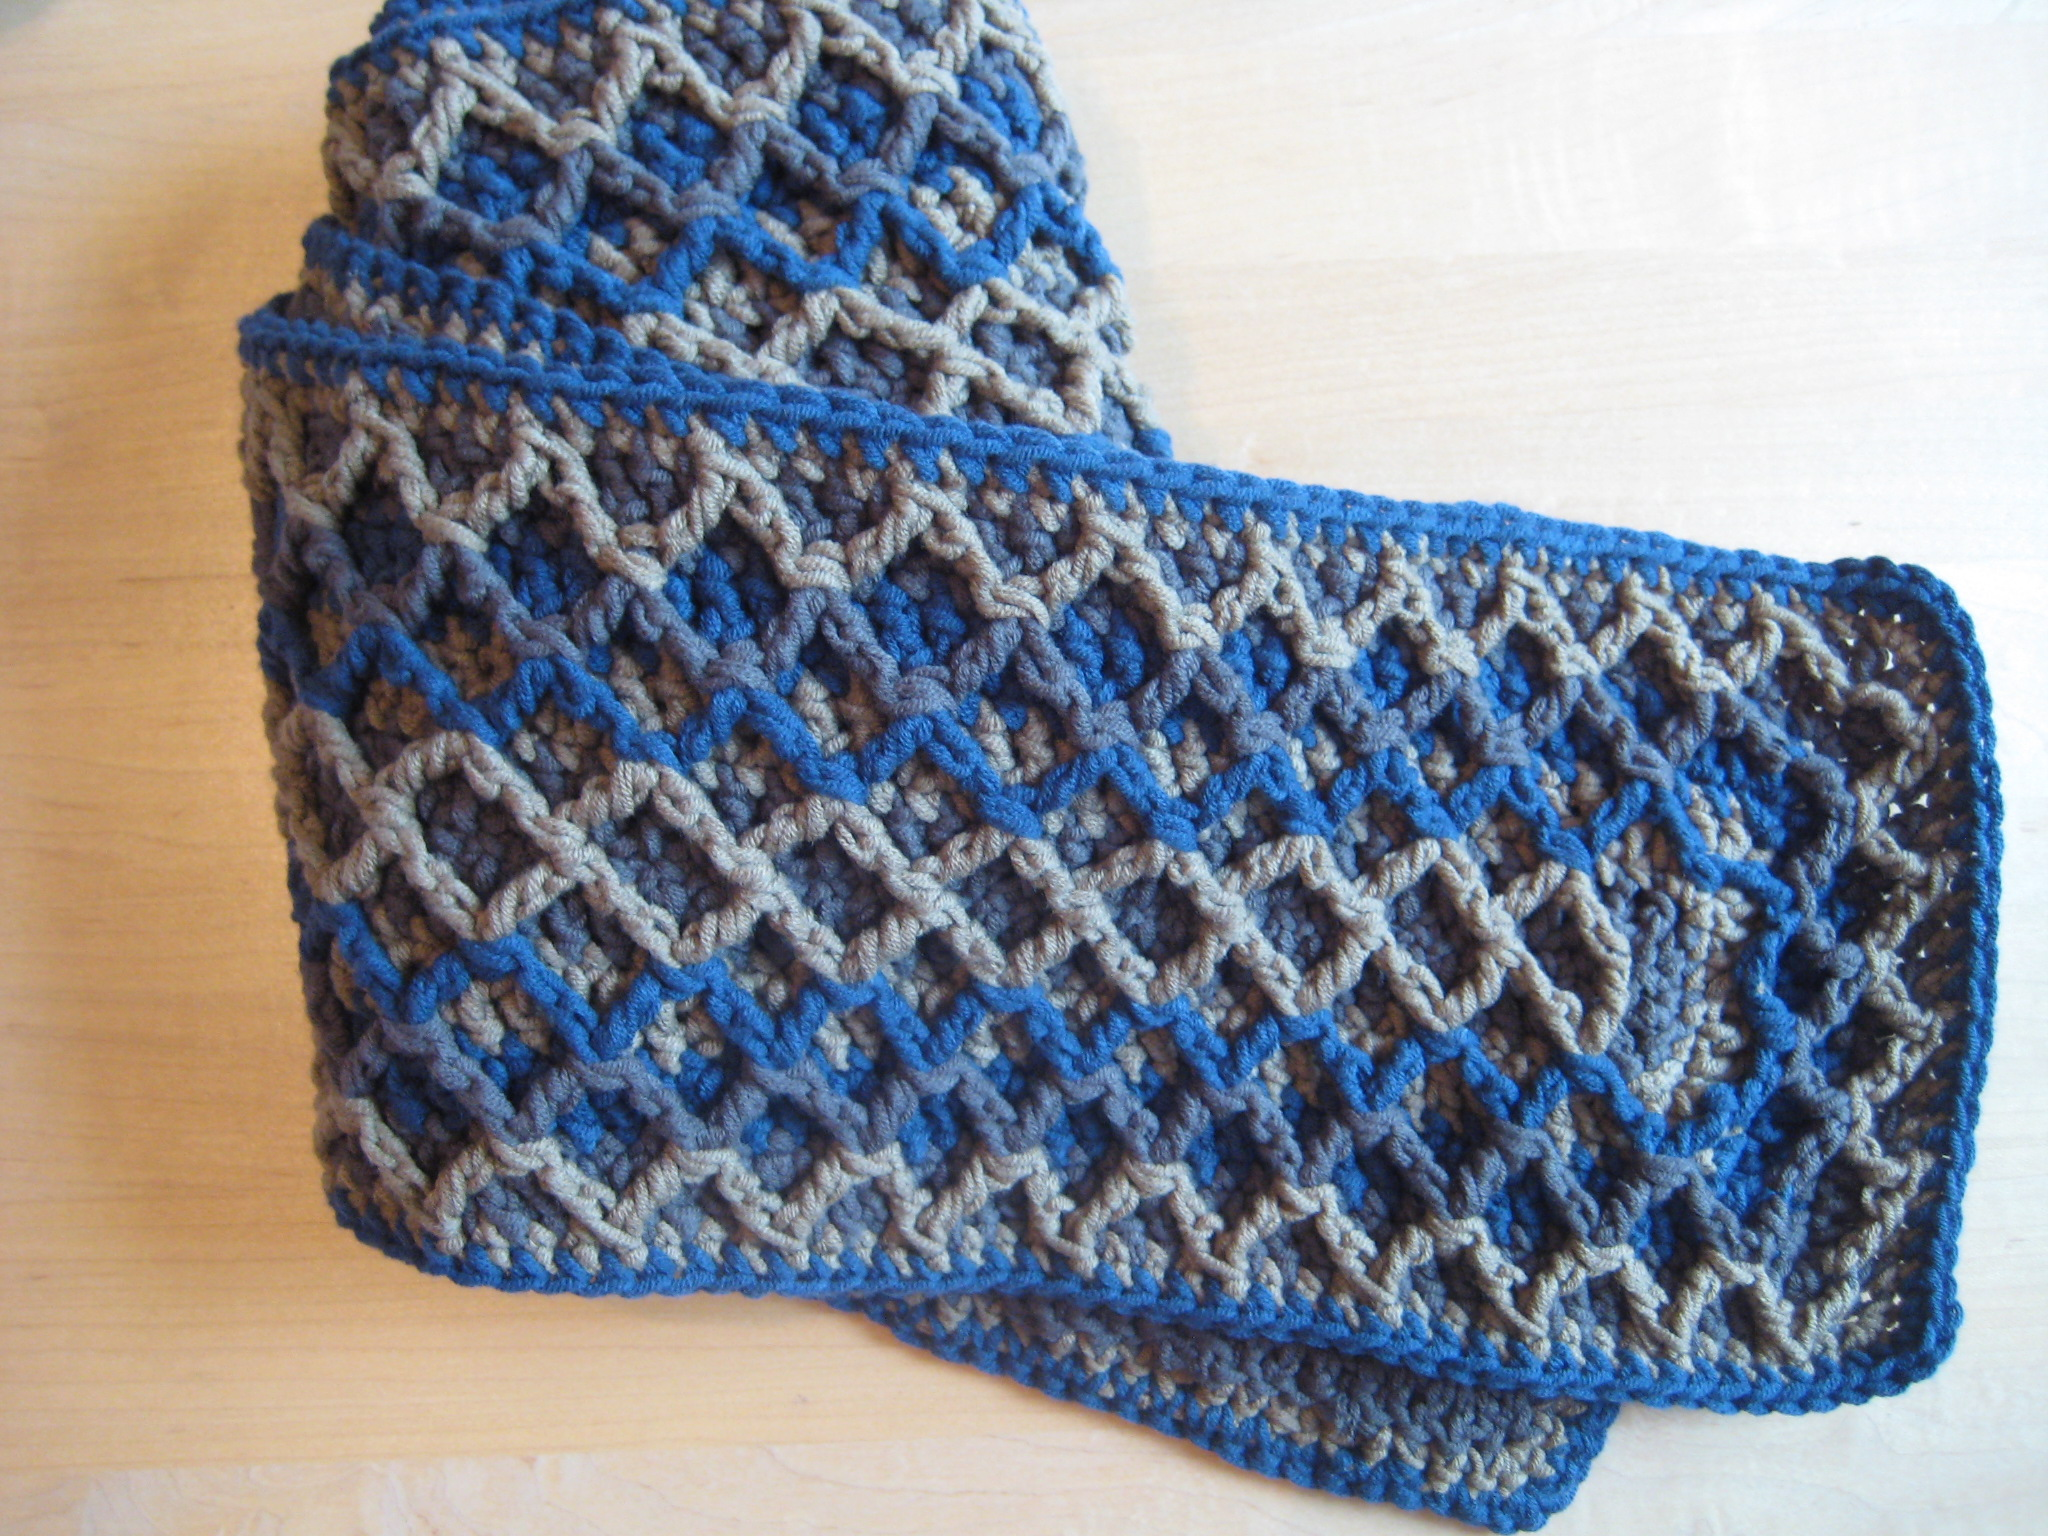 Crochet Scarf Patterns Zigzag : Zig Zag Scarf - Free Crochet Pattern